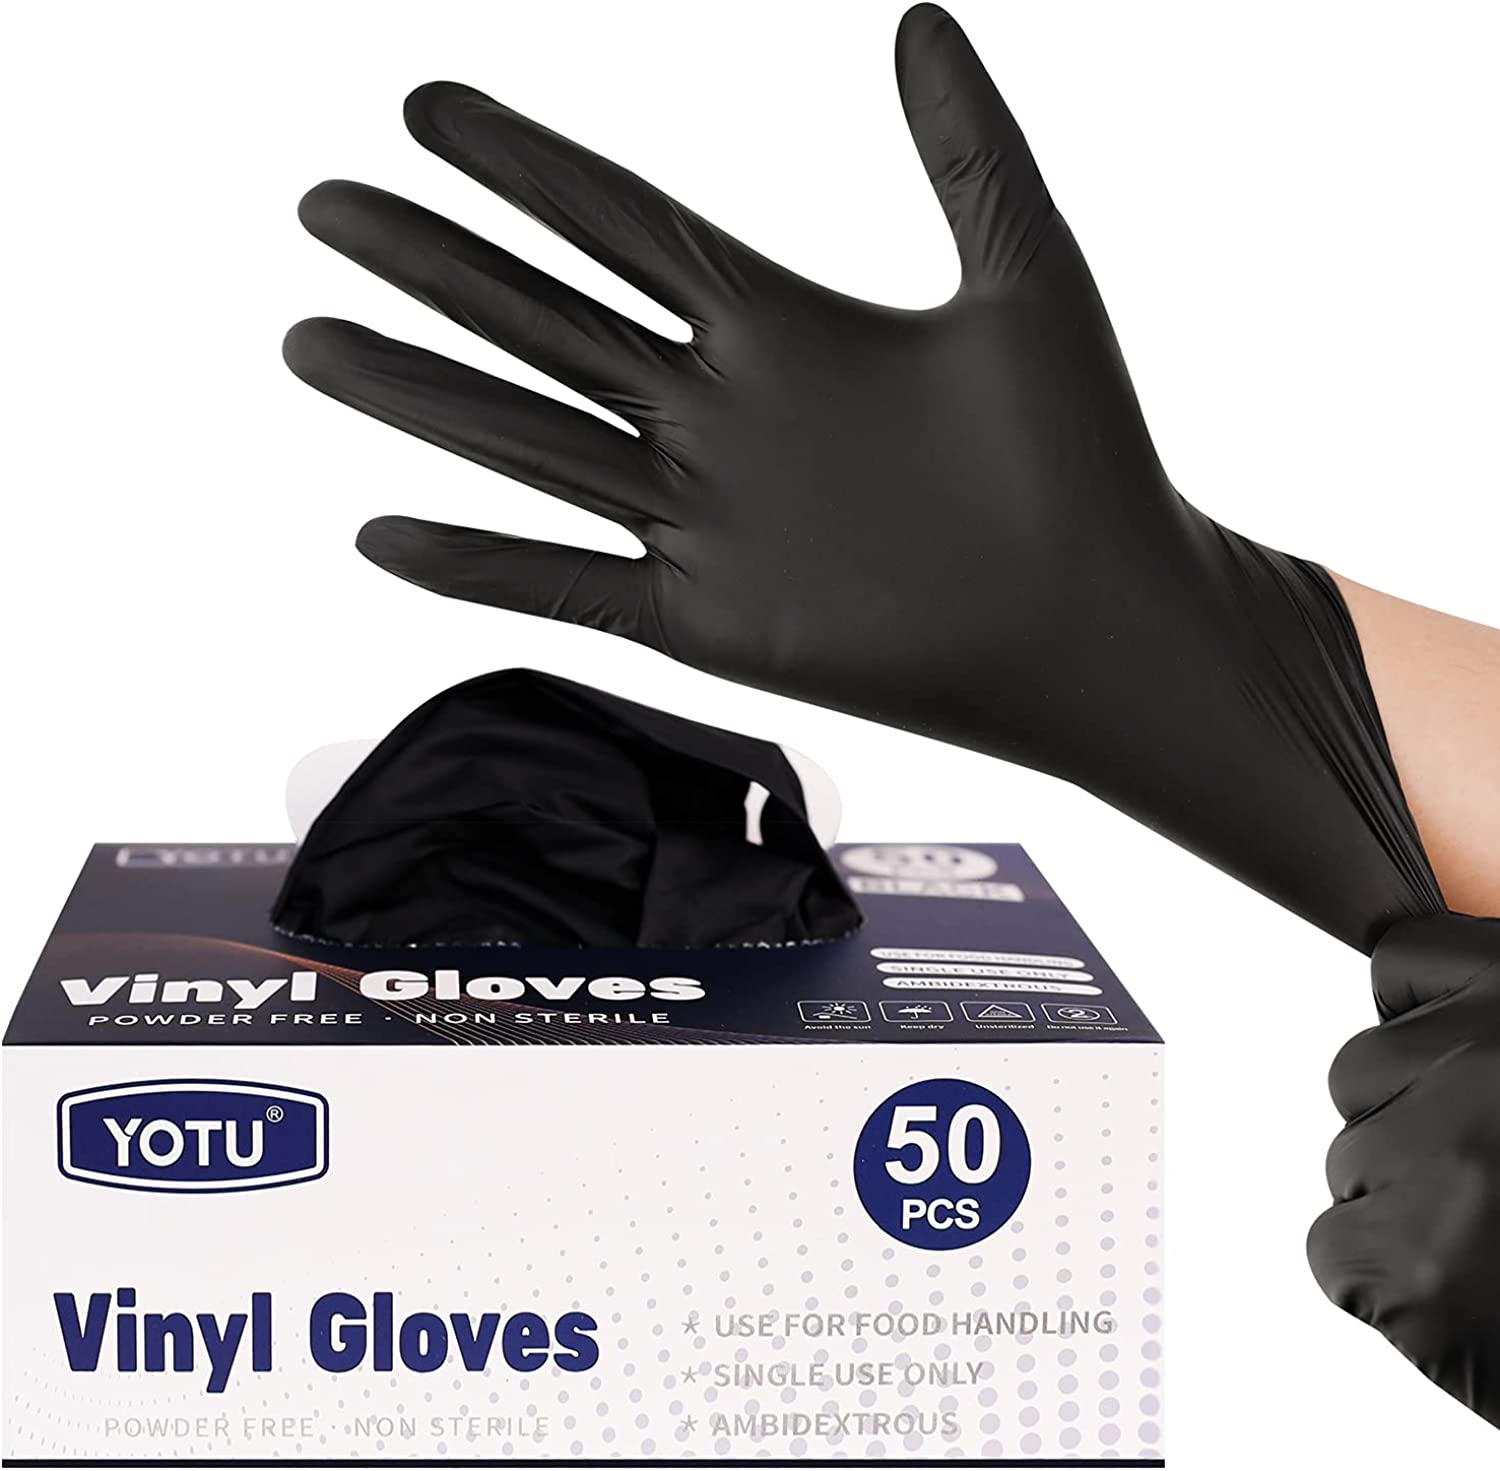 Black Disposable Vinyl Exam Gloves 50 Count, Home, Medical, Cleaning, Food, Latex/Powder Free Non-Sterile, Thickened 4-Mil